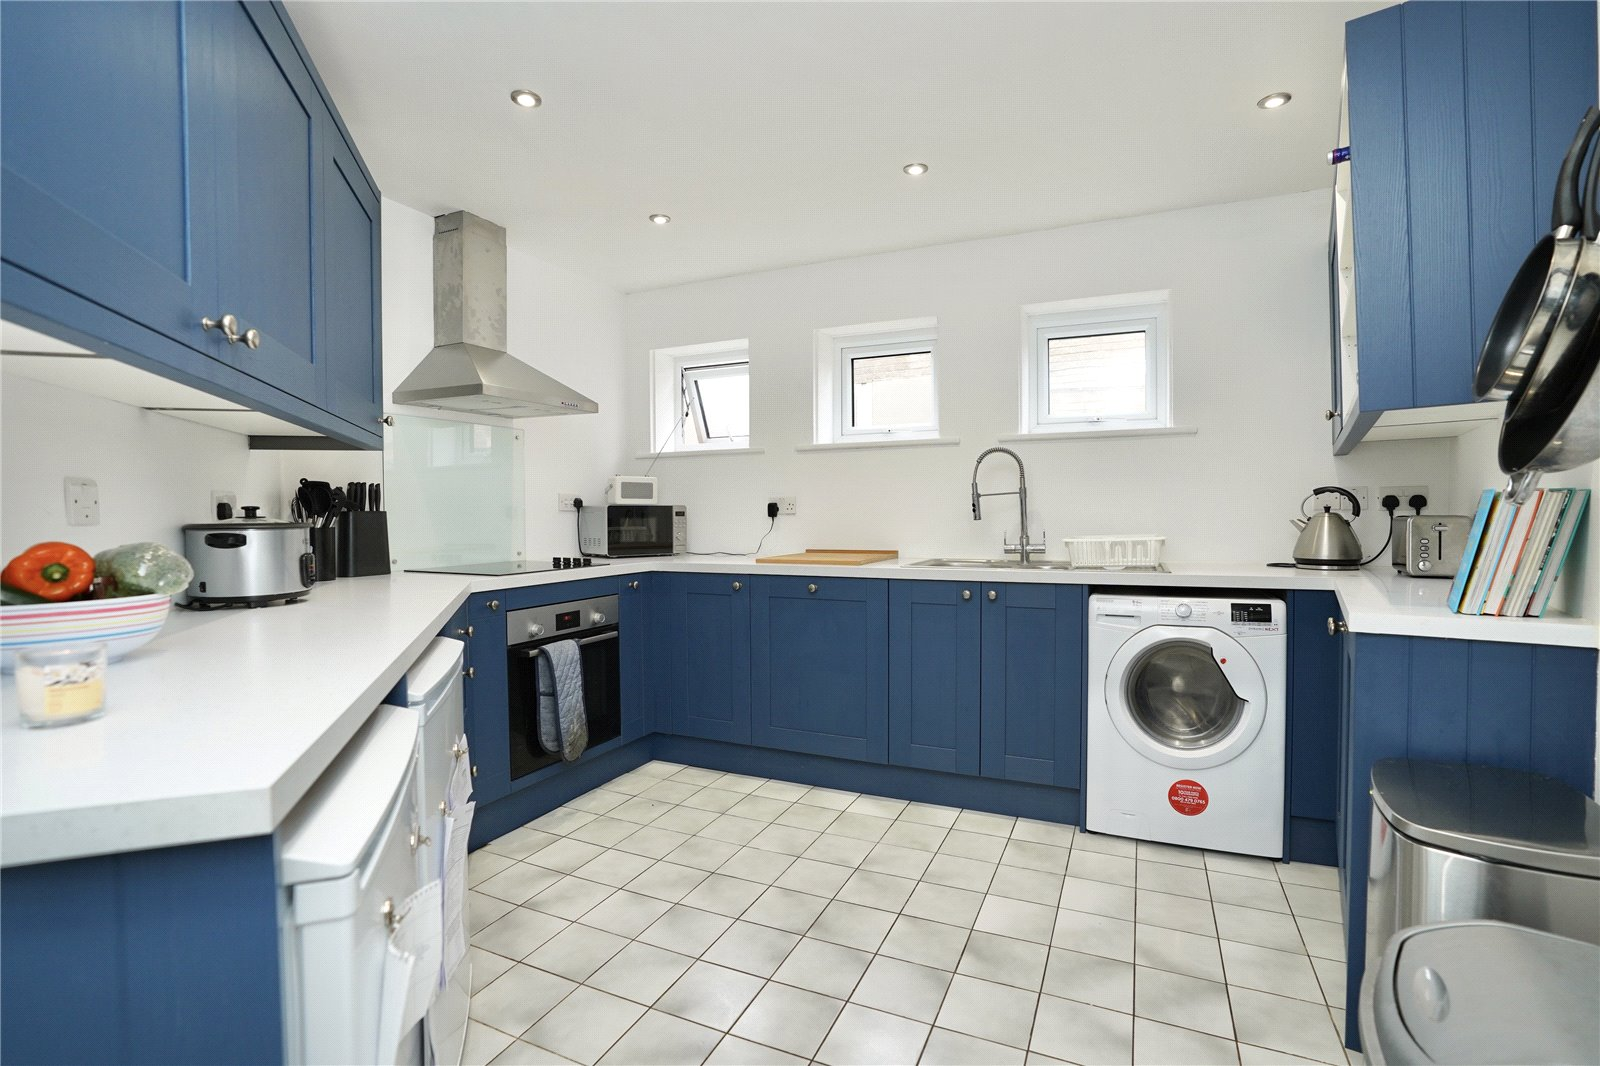 2 bed apartment for sale in Earith, PE28 3PP  - Property Image 3